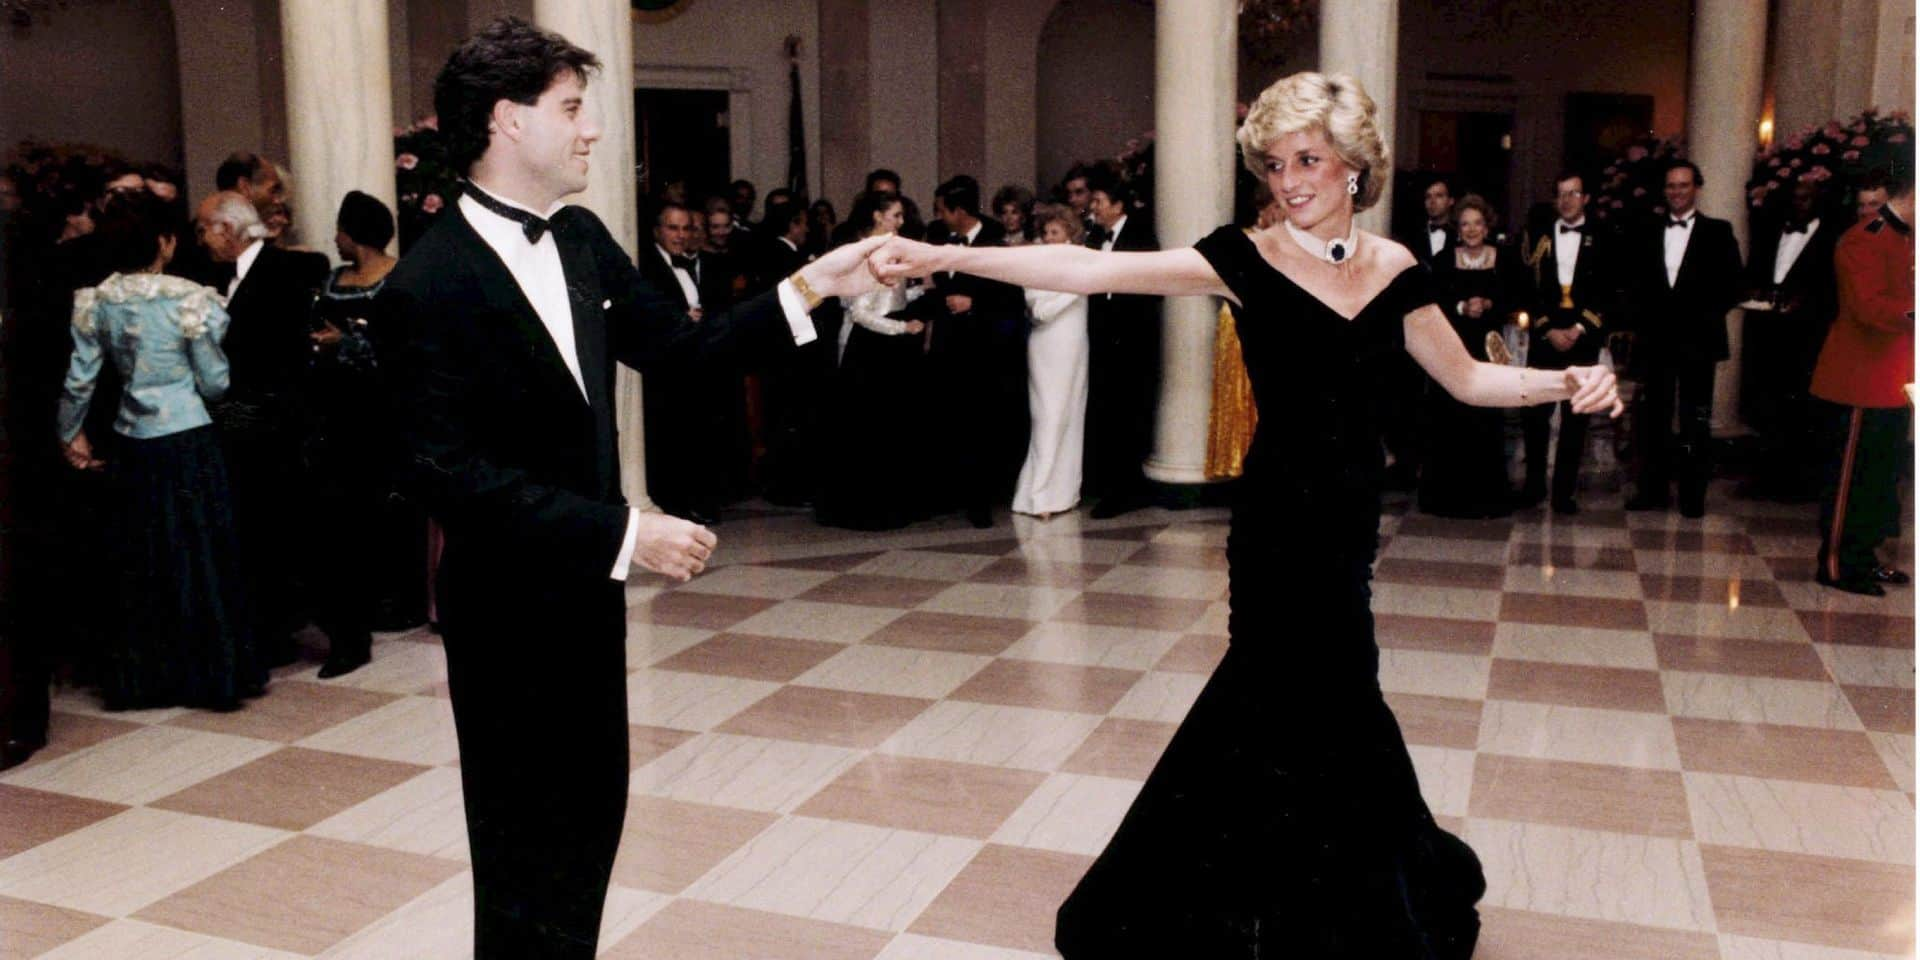 File picture dated November 1985 showing the late Diana, Princess of Wales dancing with Hollywood actor John Travolta during a White House party